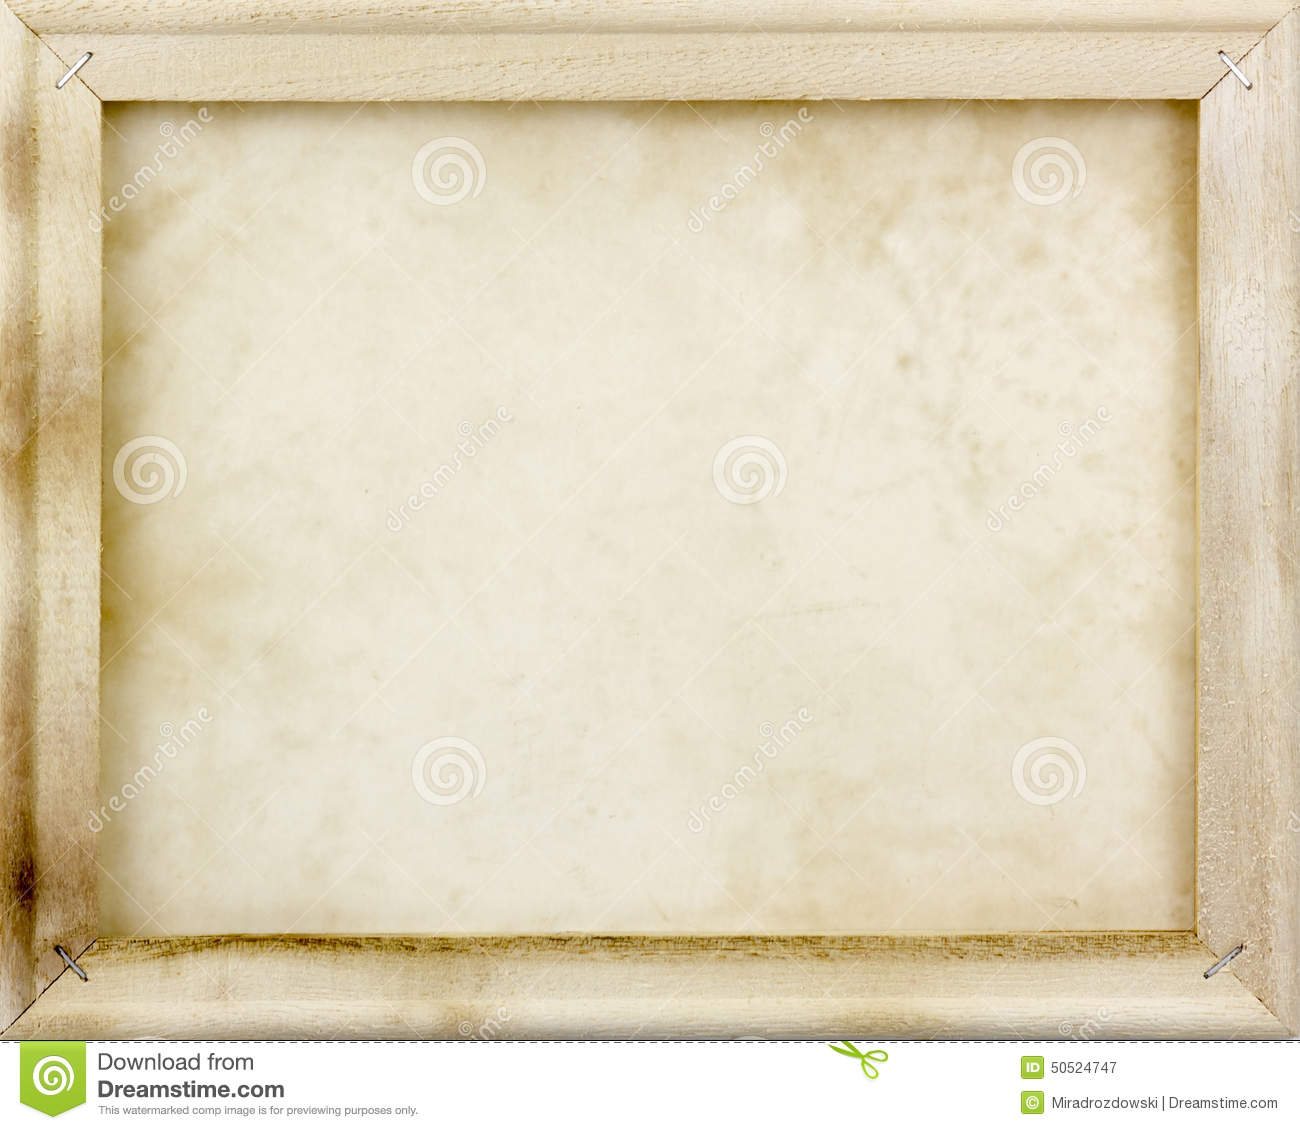 Wooden frame with old paper